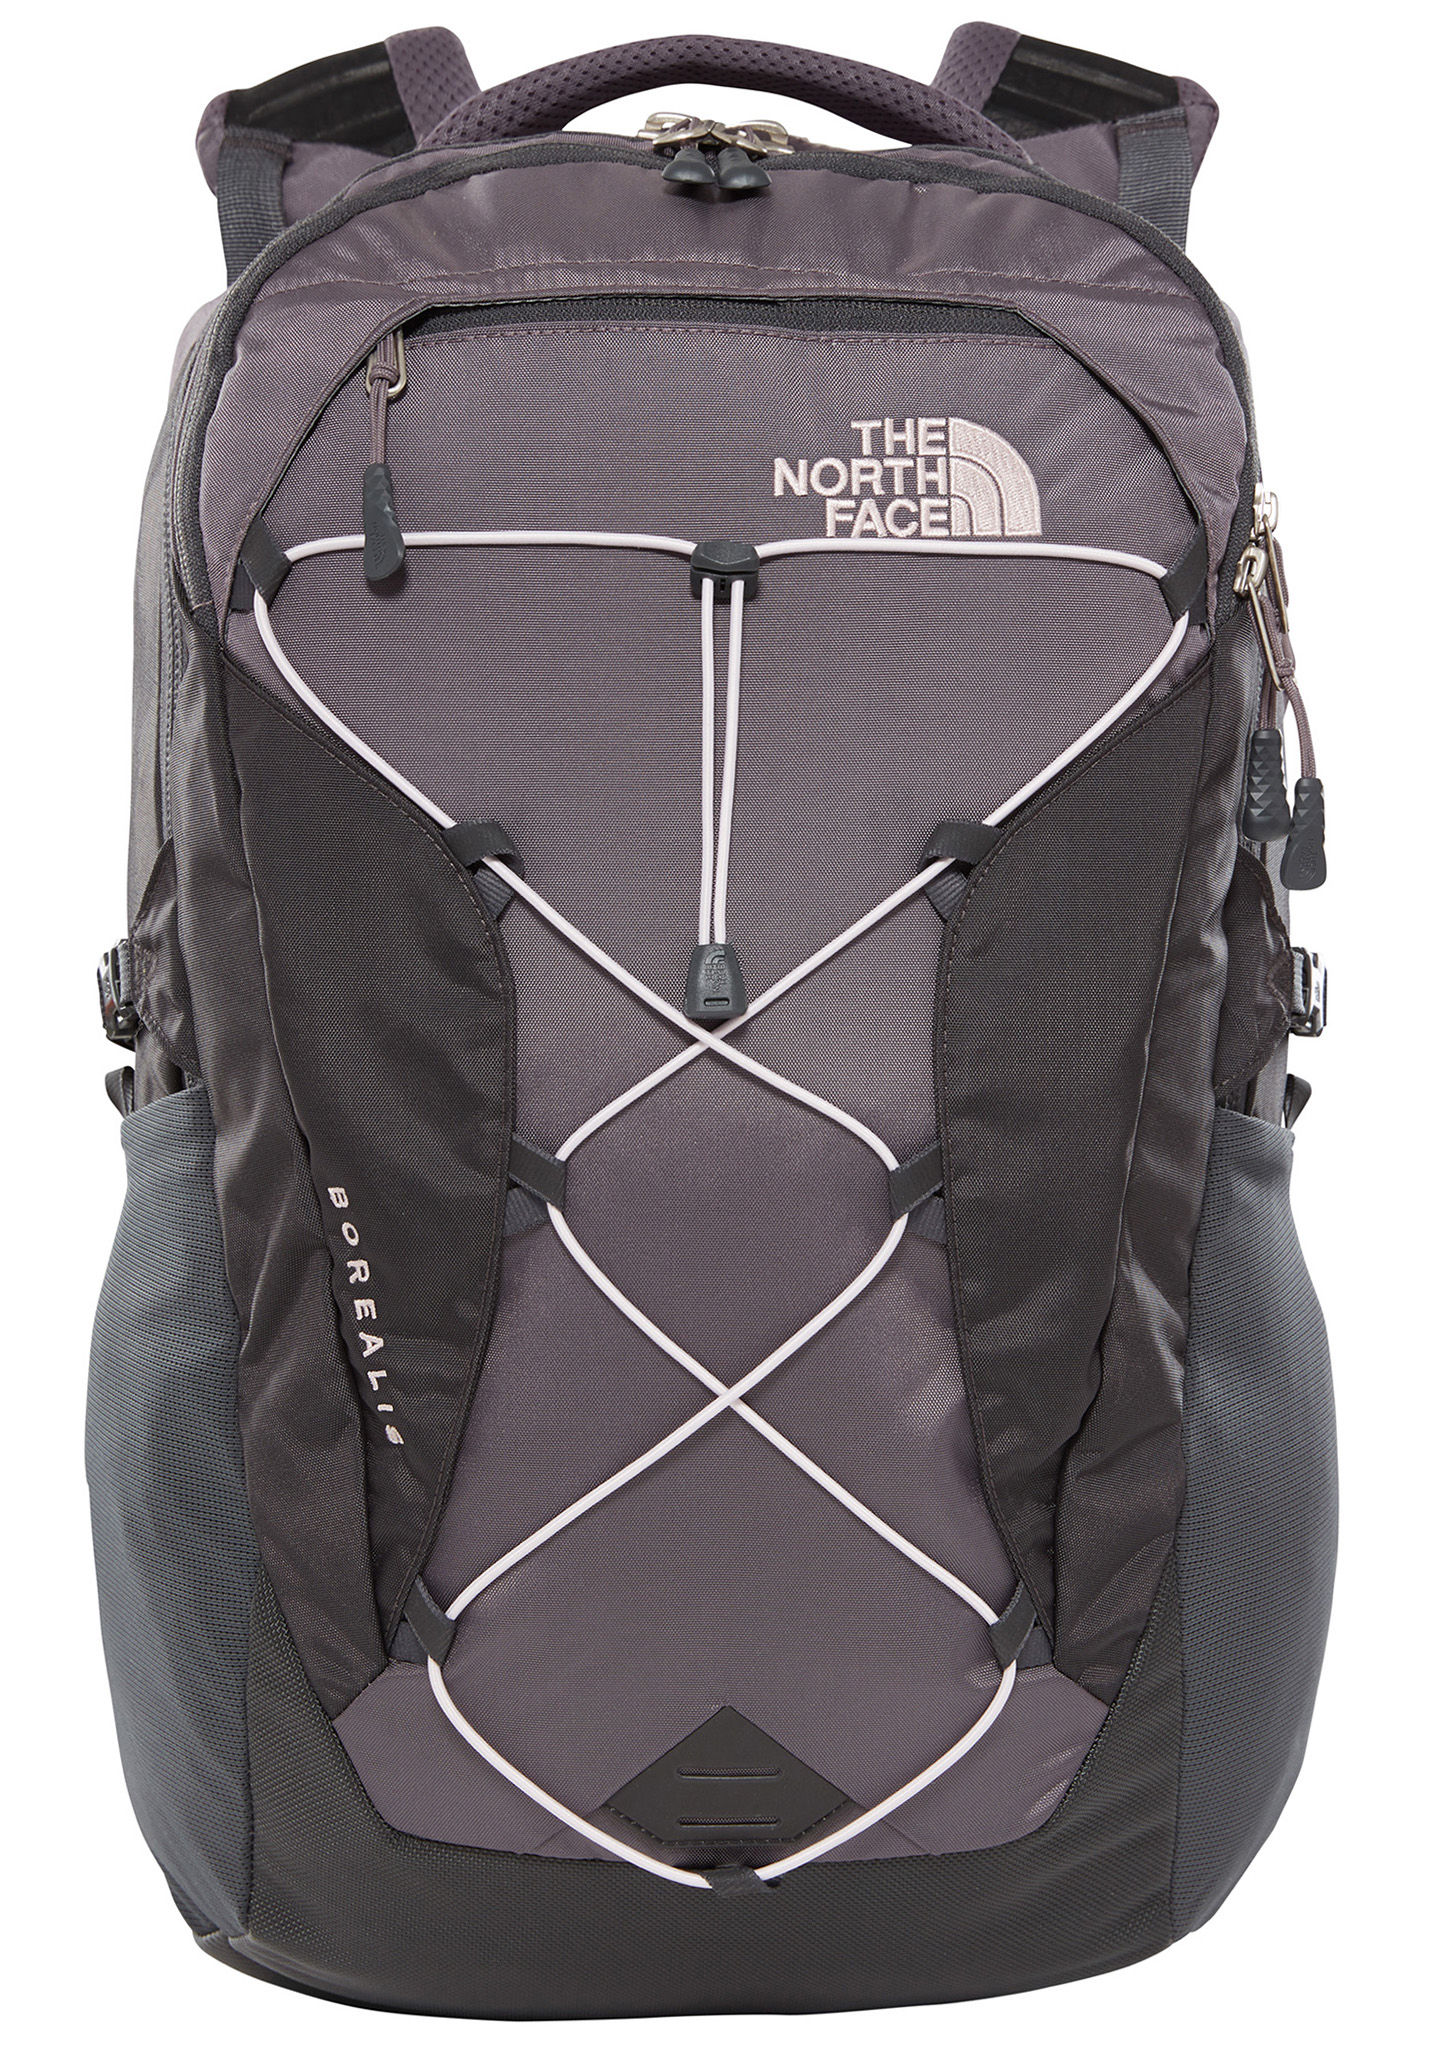 28l Mujeres The Face Mochila Gris Borealis Para North SpUGzMqV